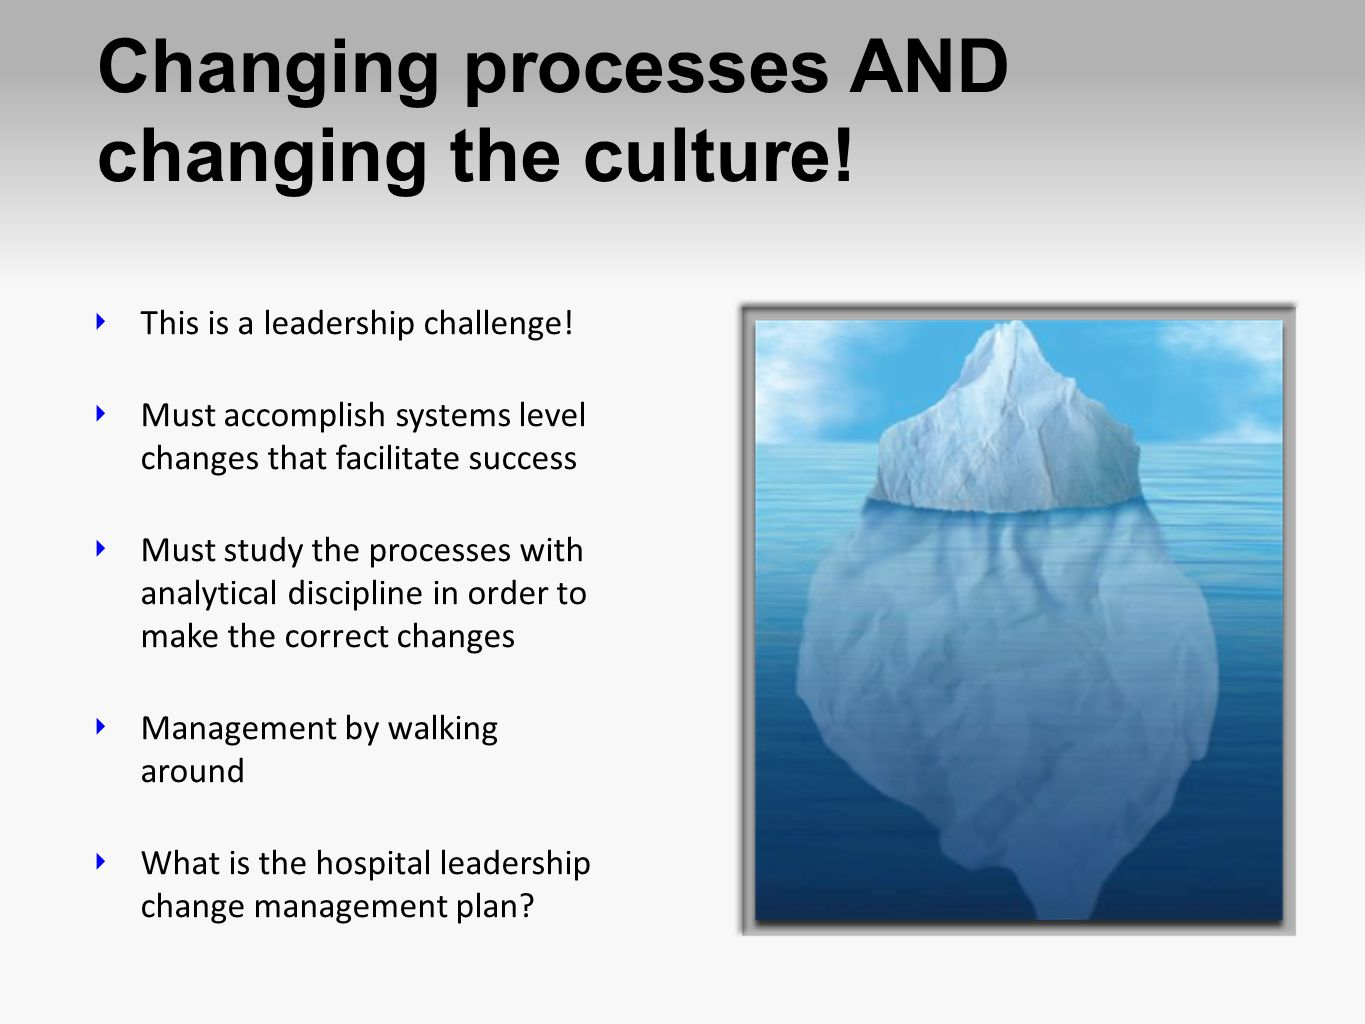 Changing processes AND changing the culture!